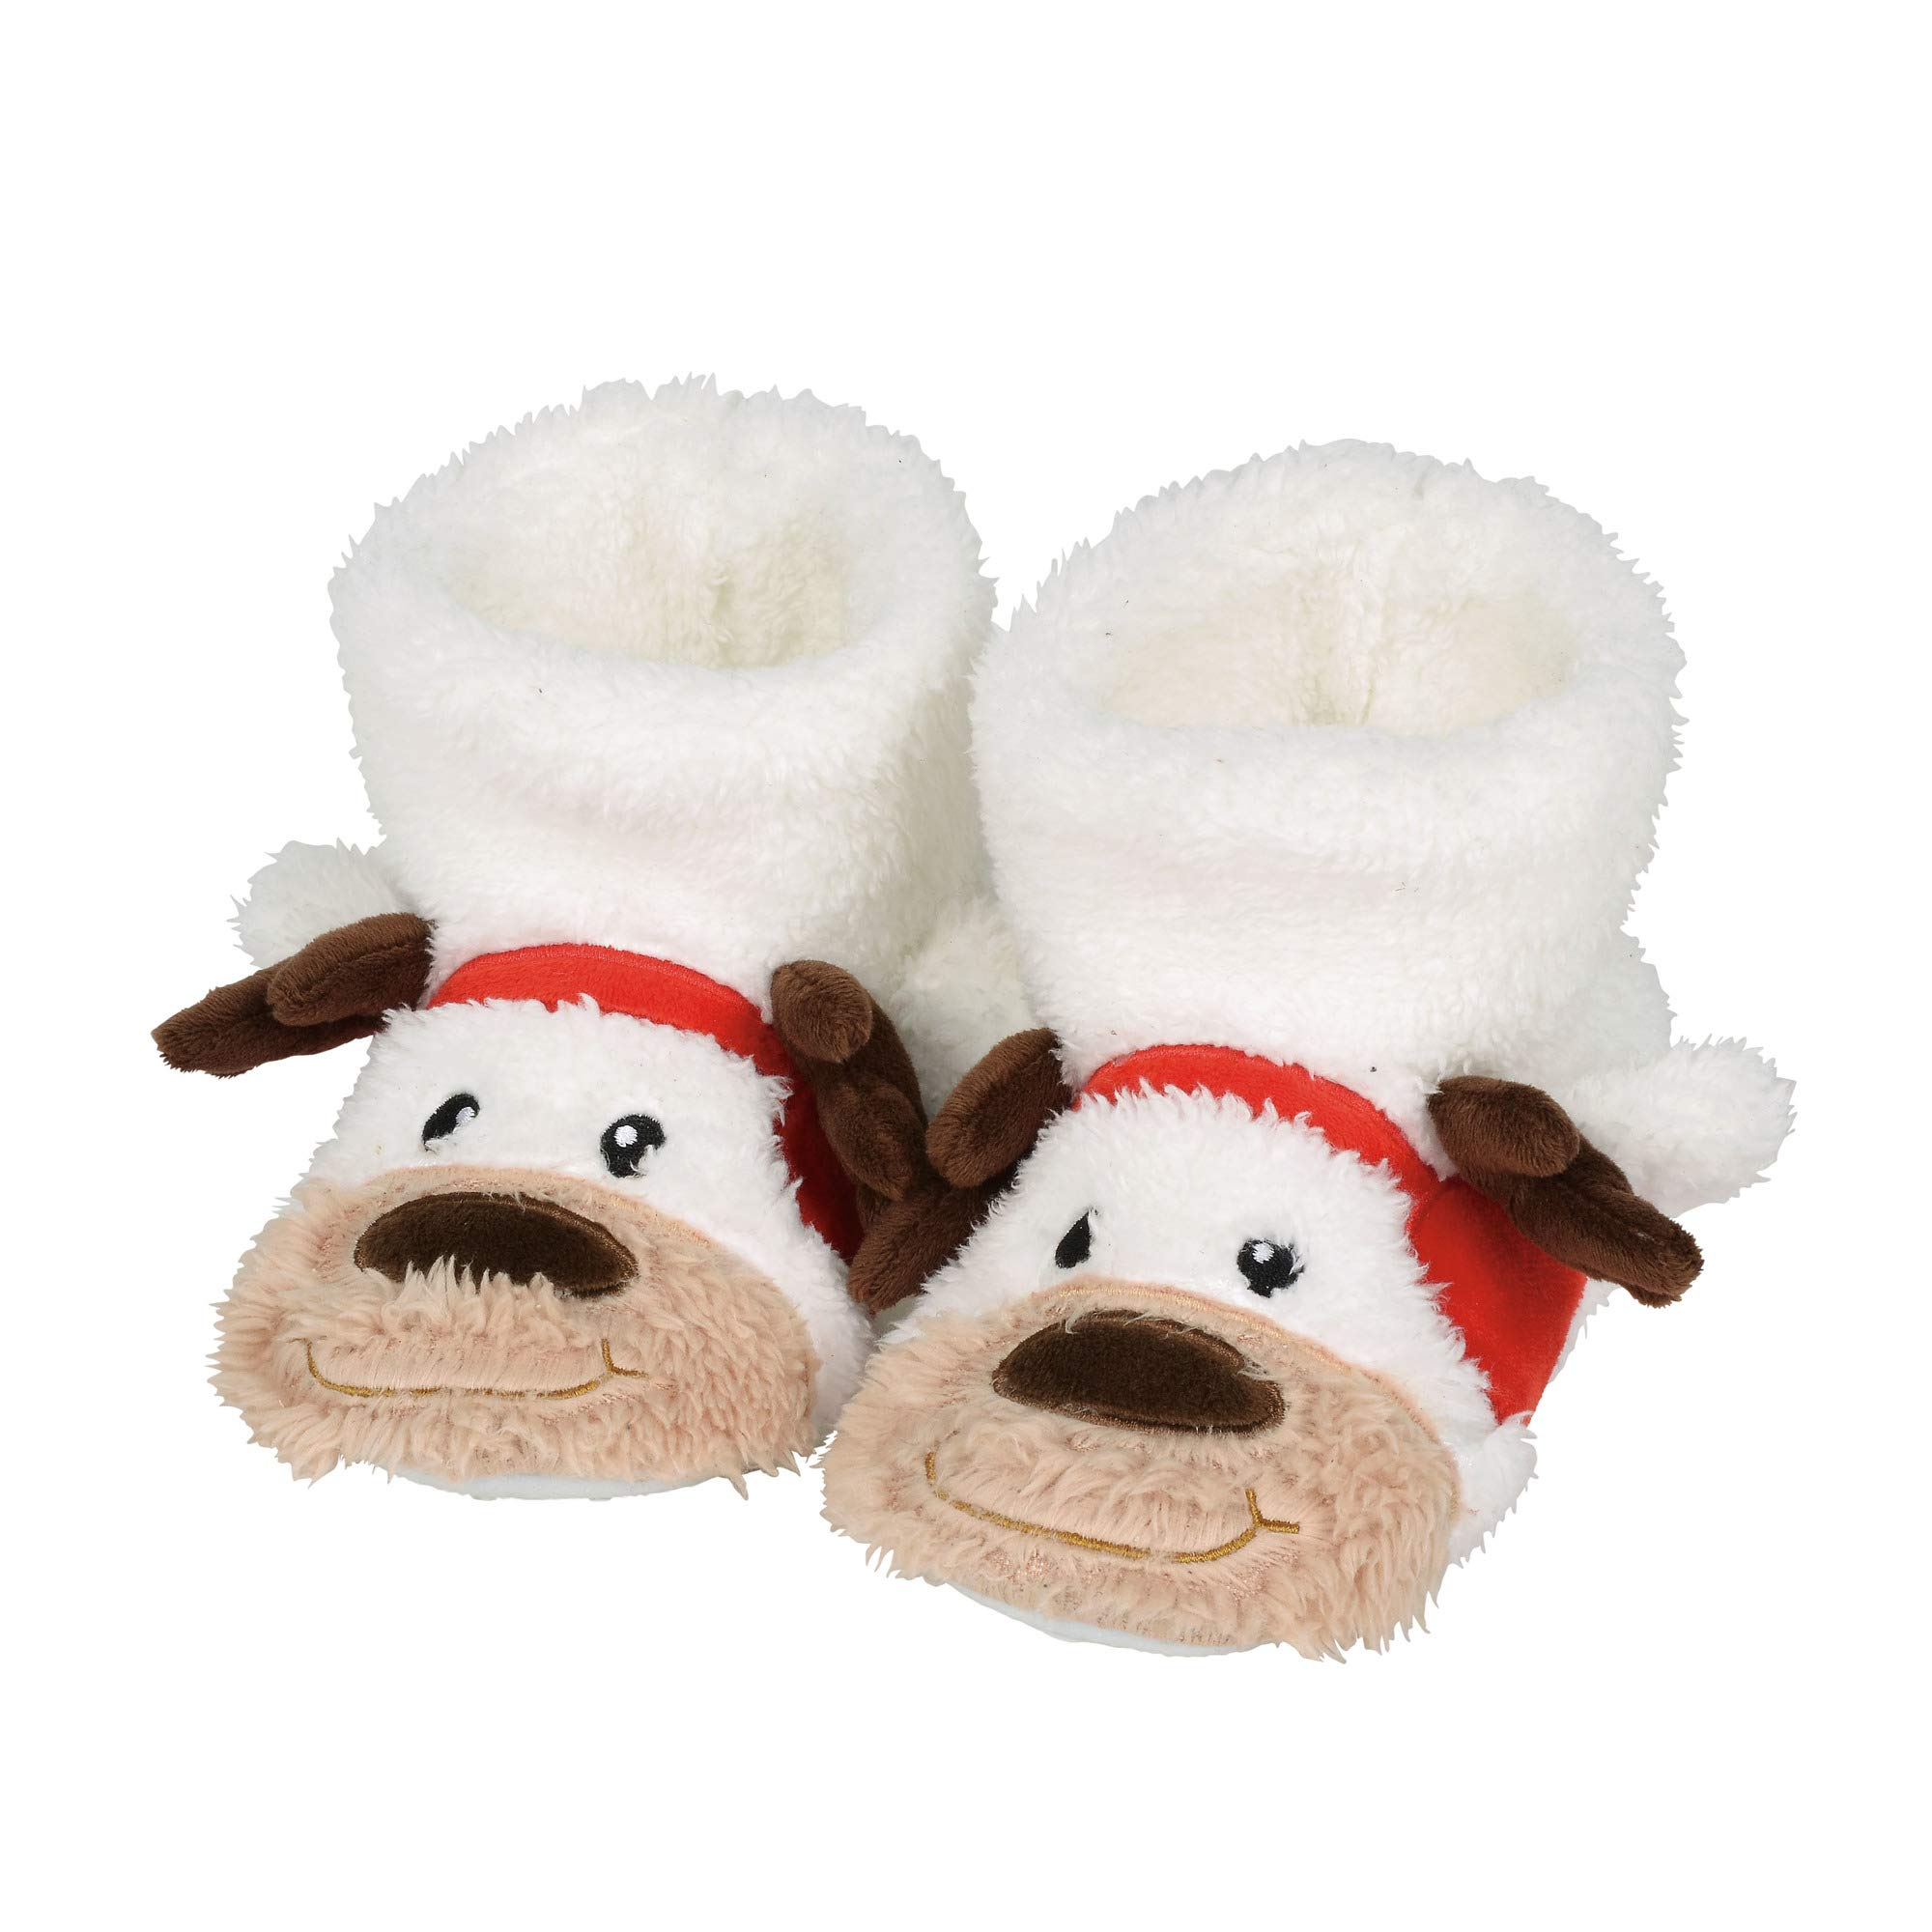 """Department 56 Snowpinions """"Reindeer Slippers, Child Size Small 7-8, Multicolor"""